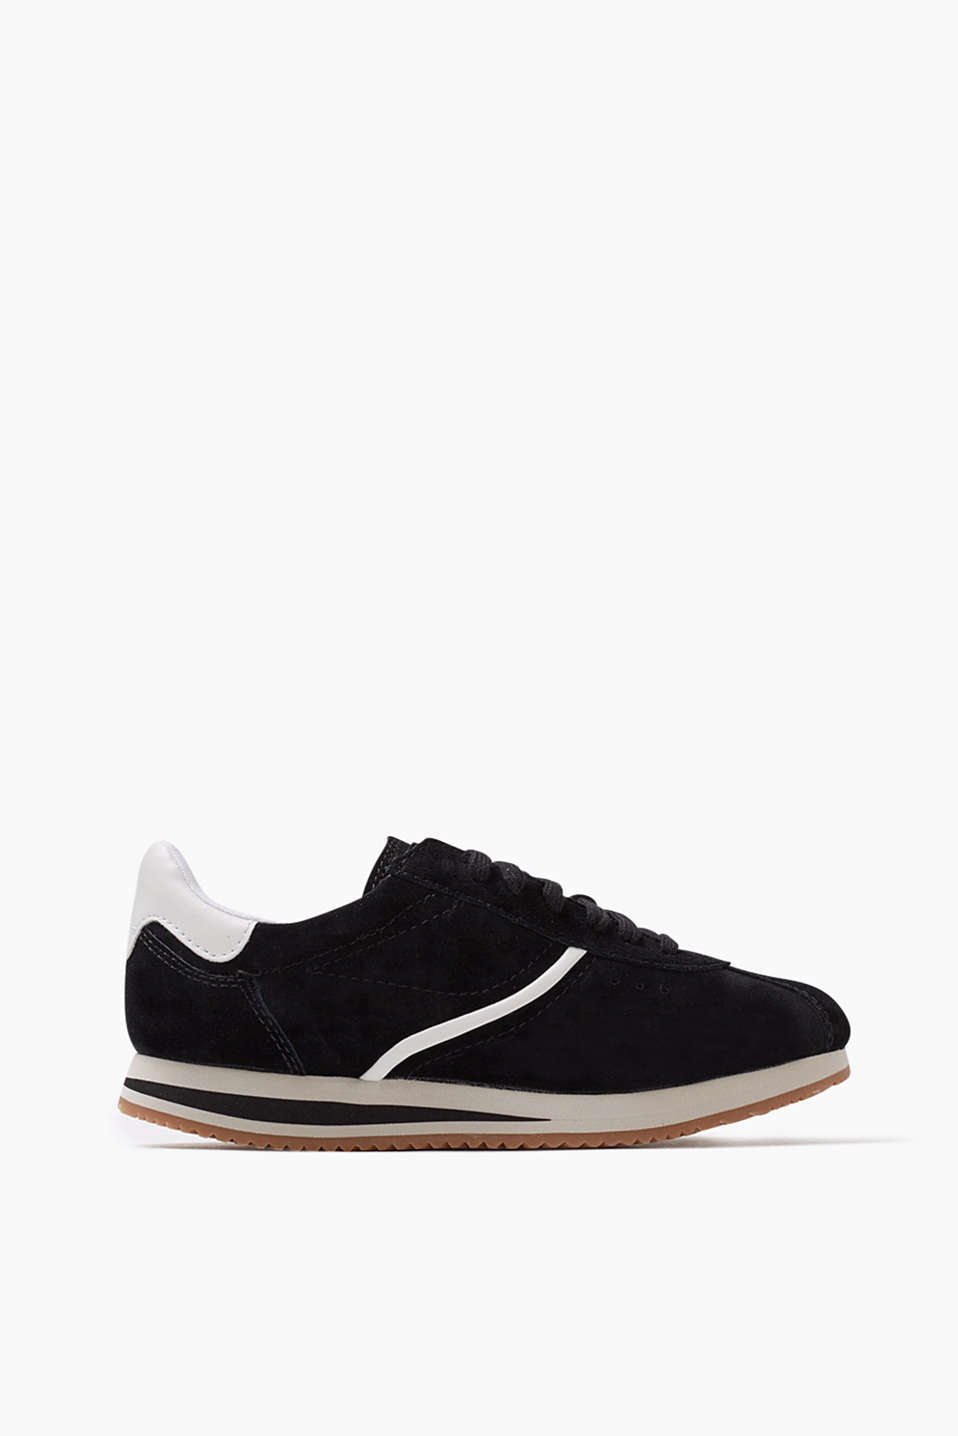 Retro, lace-up trainers made of suede with a contrasting sole